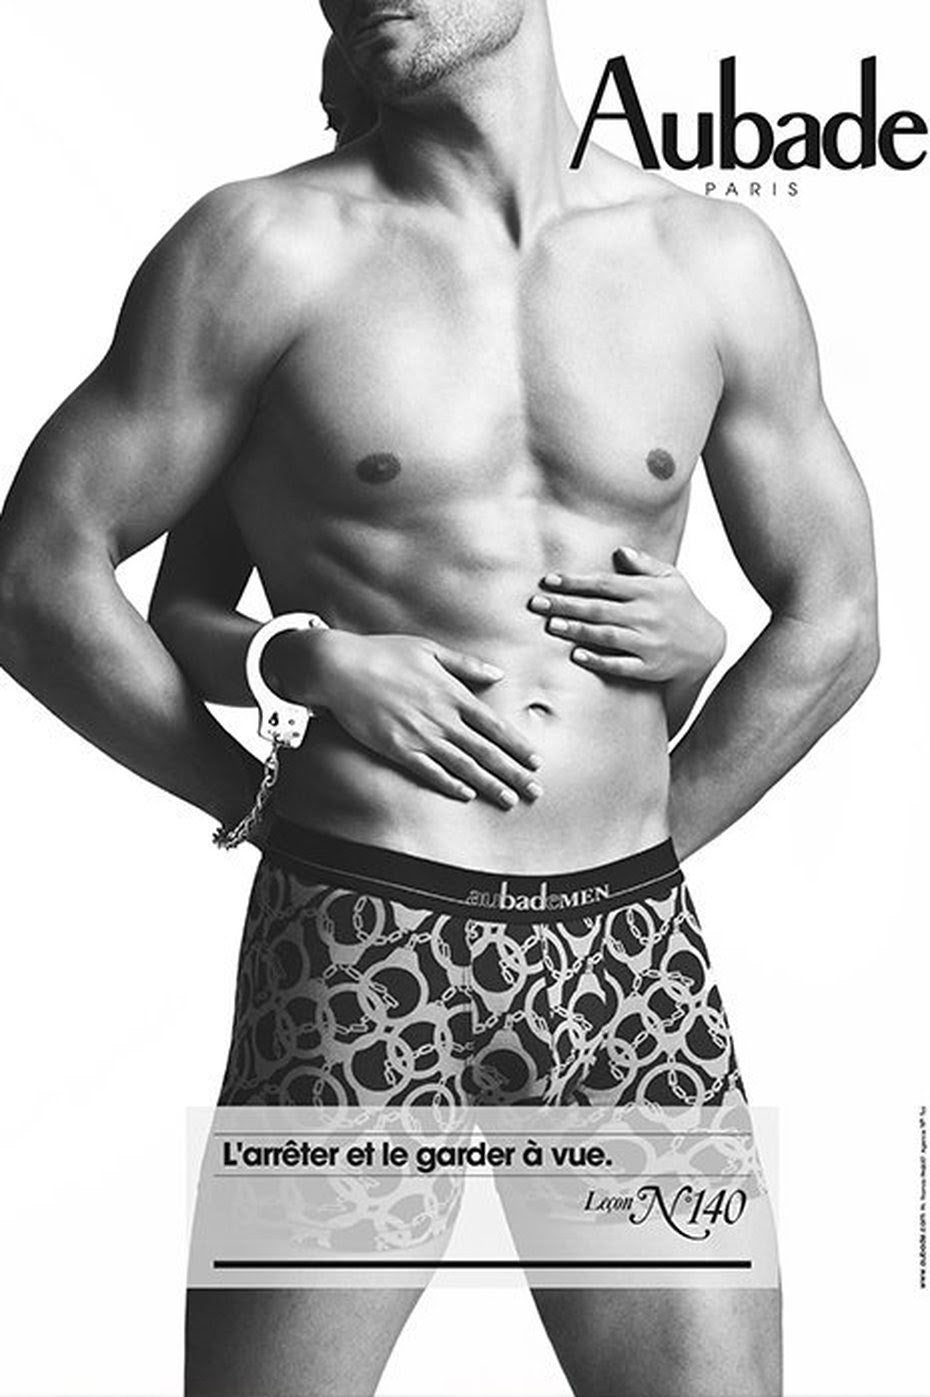 The Aubademen, sexy boxer line collection, came in 2013.